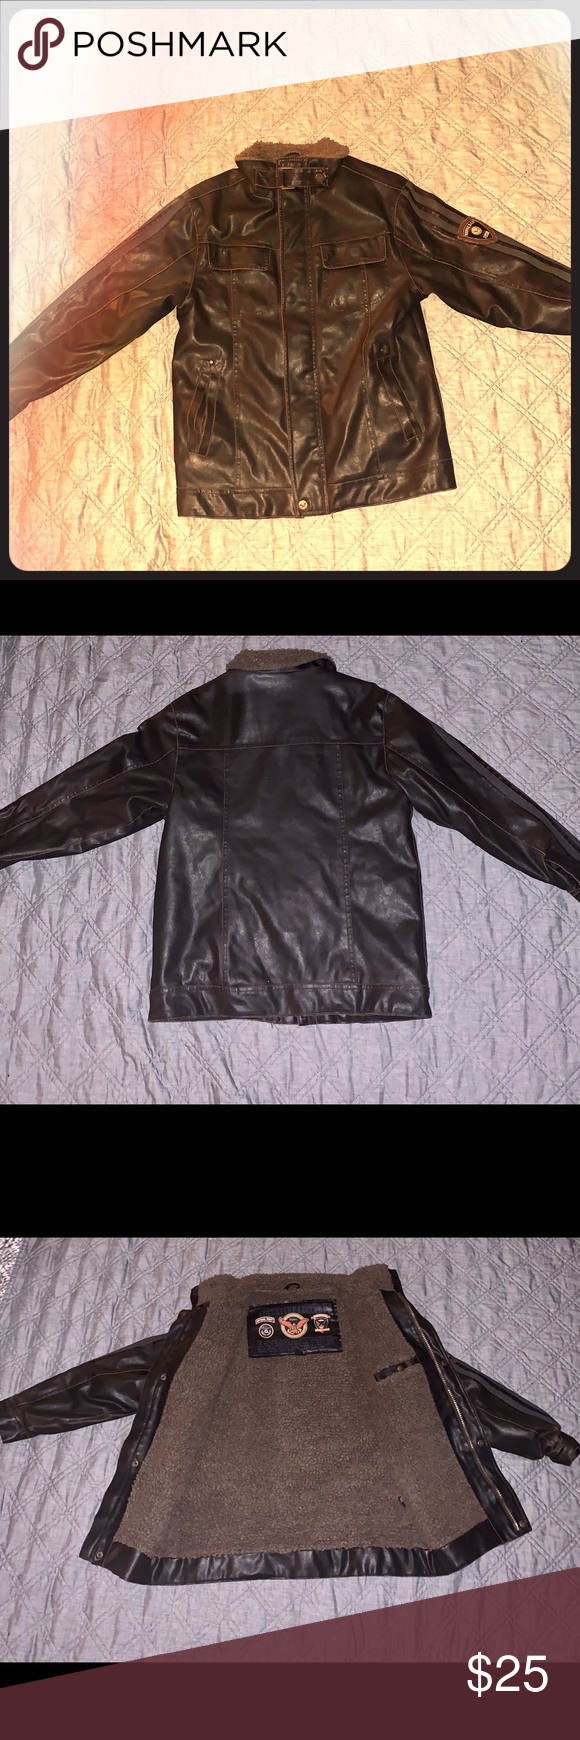 Bomber Jacket 1958 Adventure Legends Outfitters Bomber Jacket Jackets Outfitter [ 1740 x 580 Pixel ]